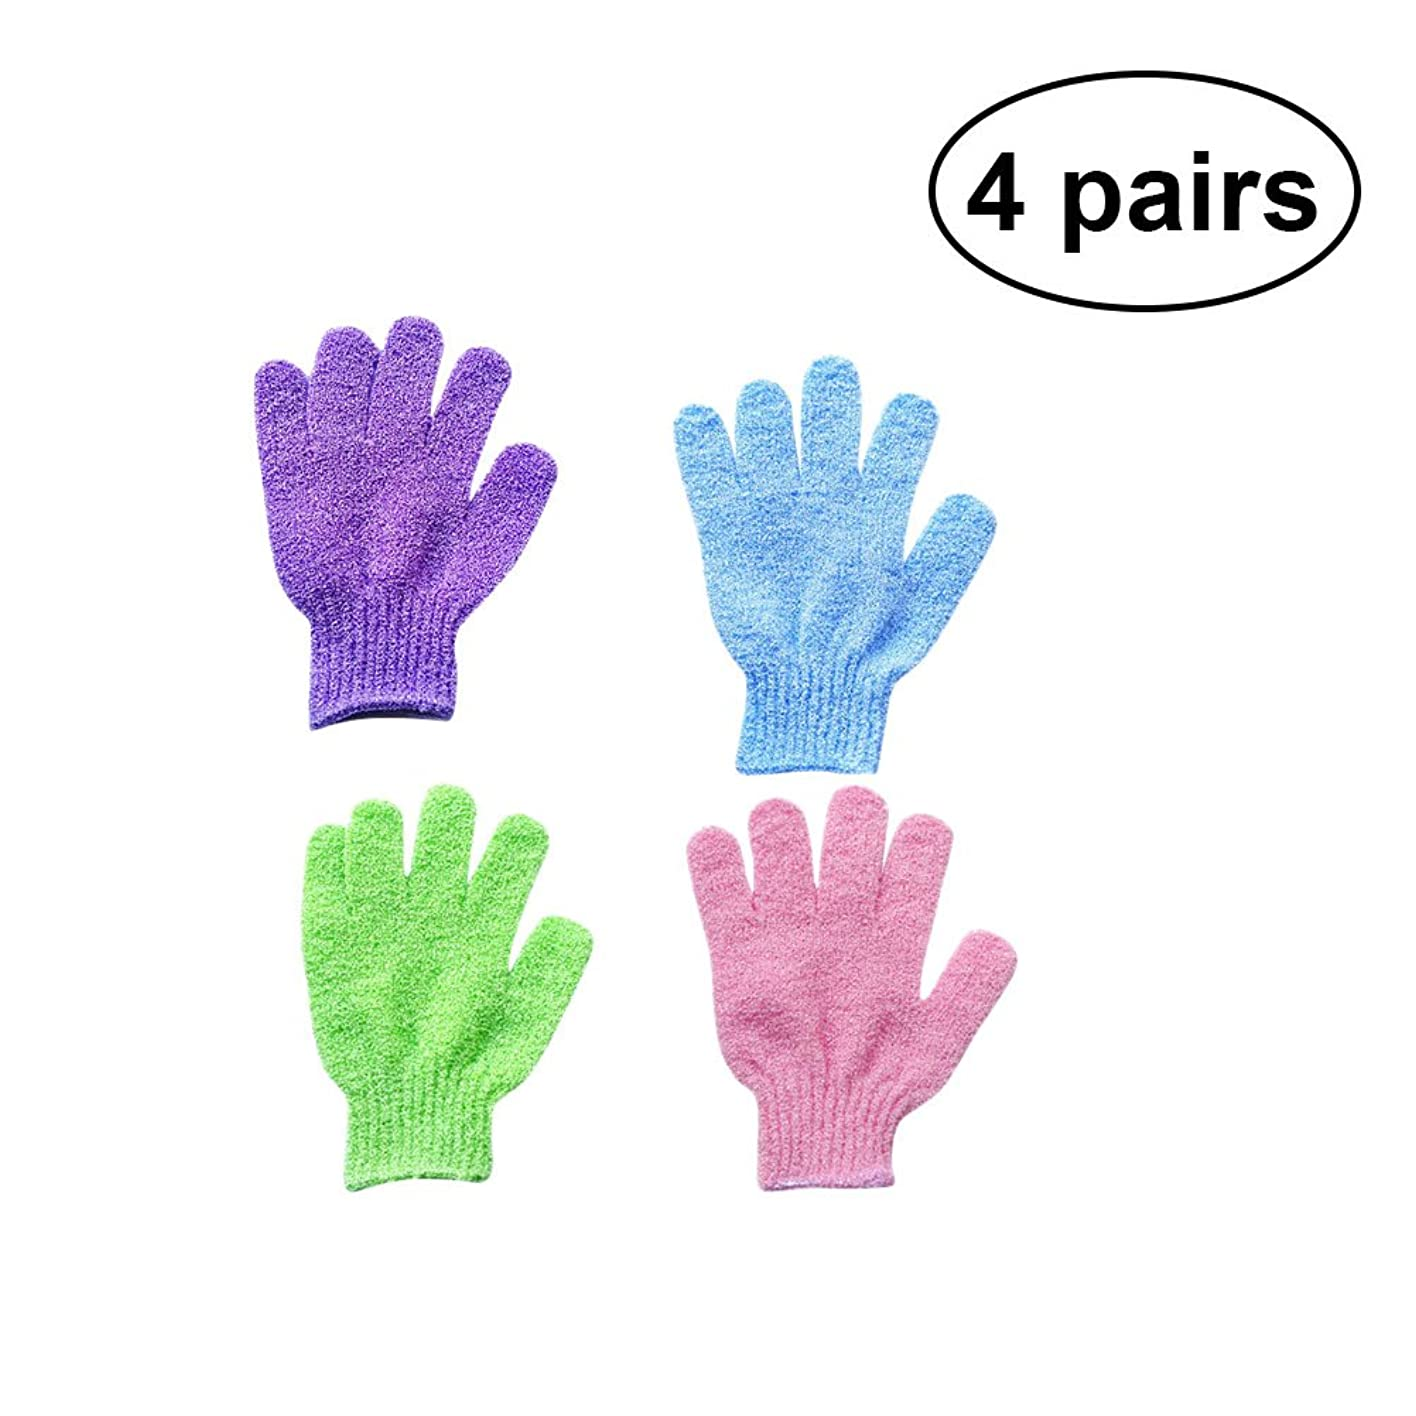 華氏突き出すクリックHealifty 4 Pairs Exfoliating Bath Gloves Shower Mitts Exfoliating Body Spa Massage Dead Skin Cell Remover